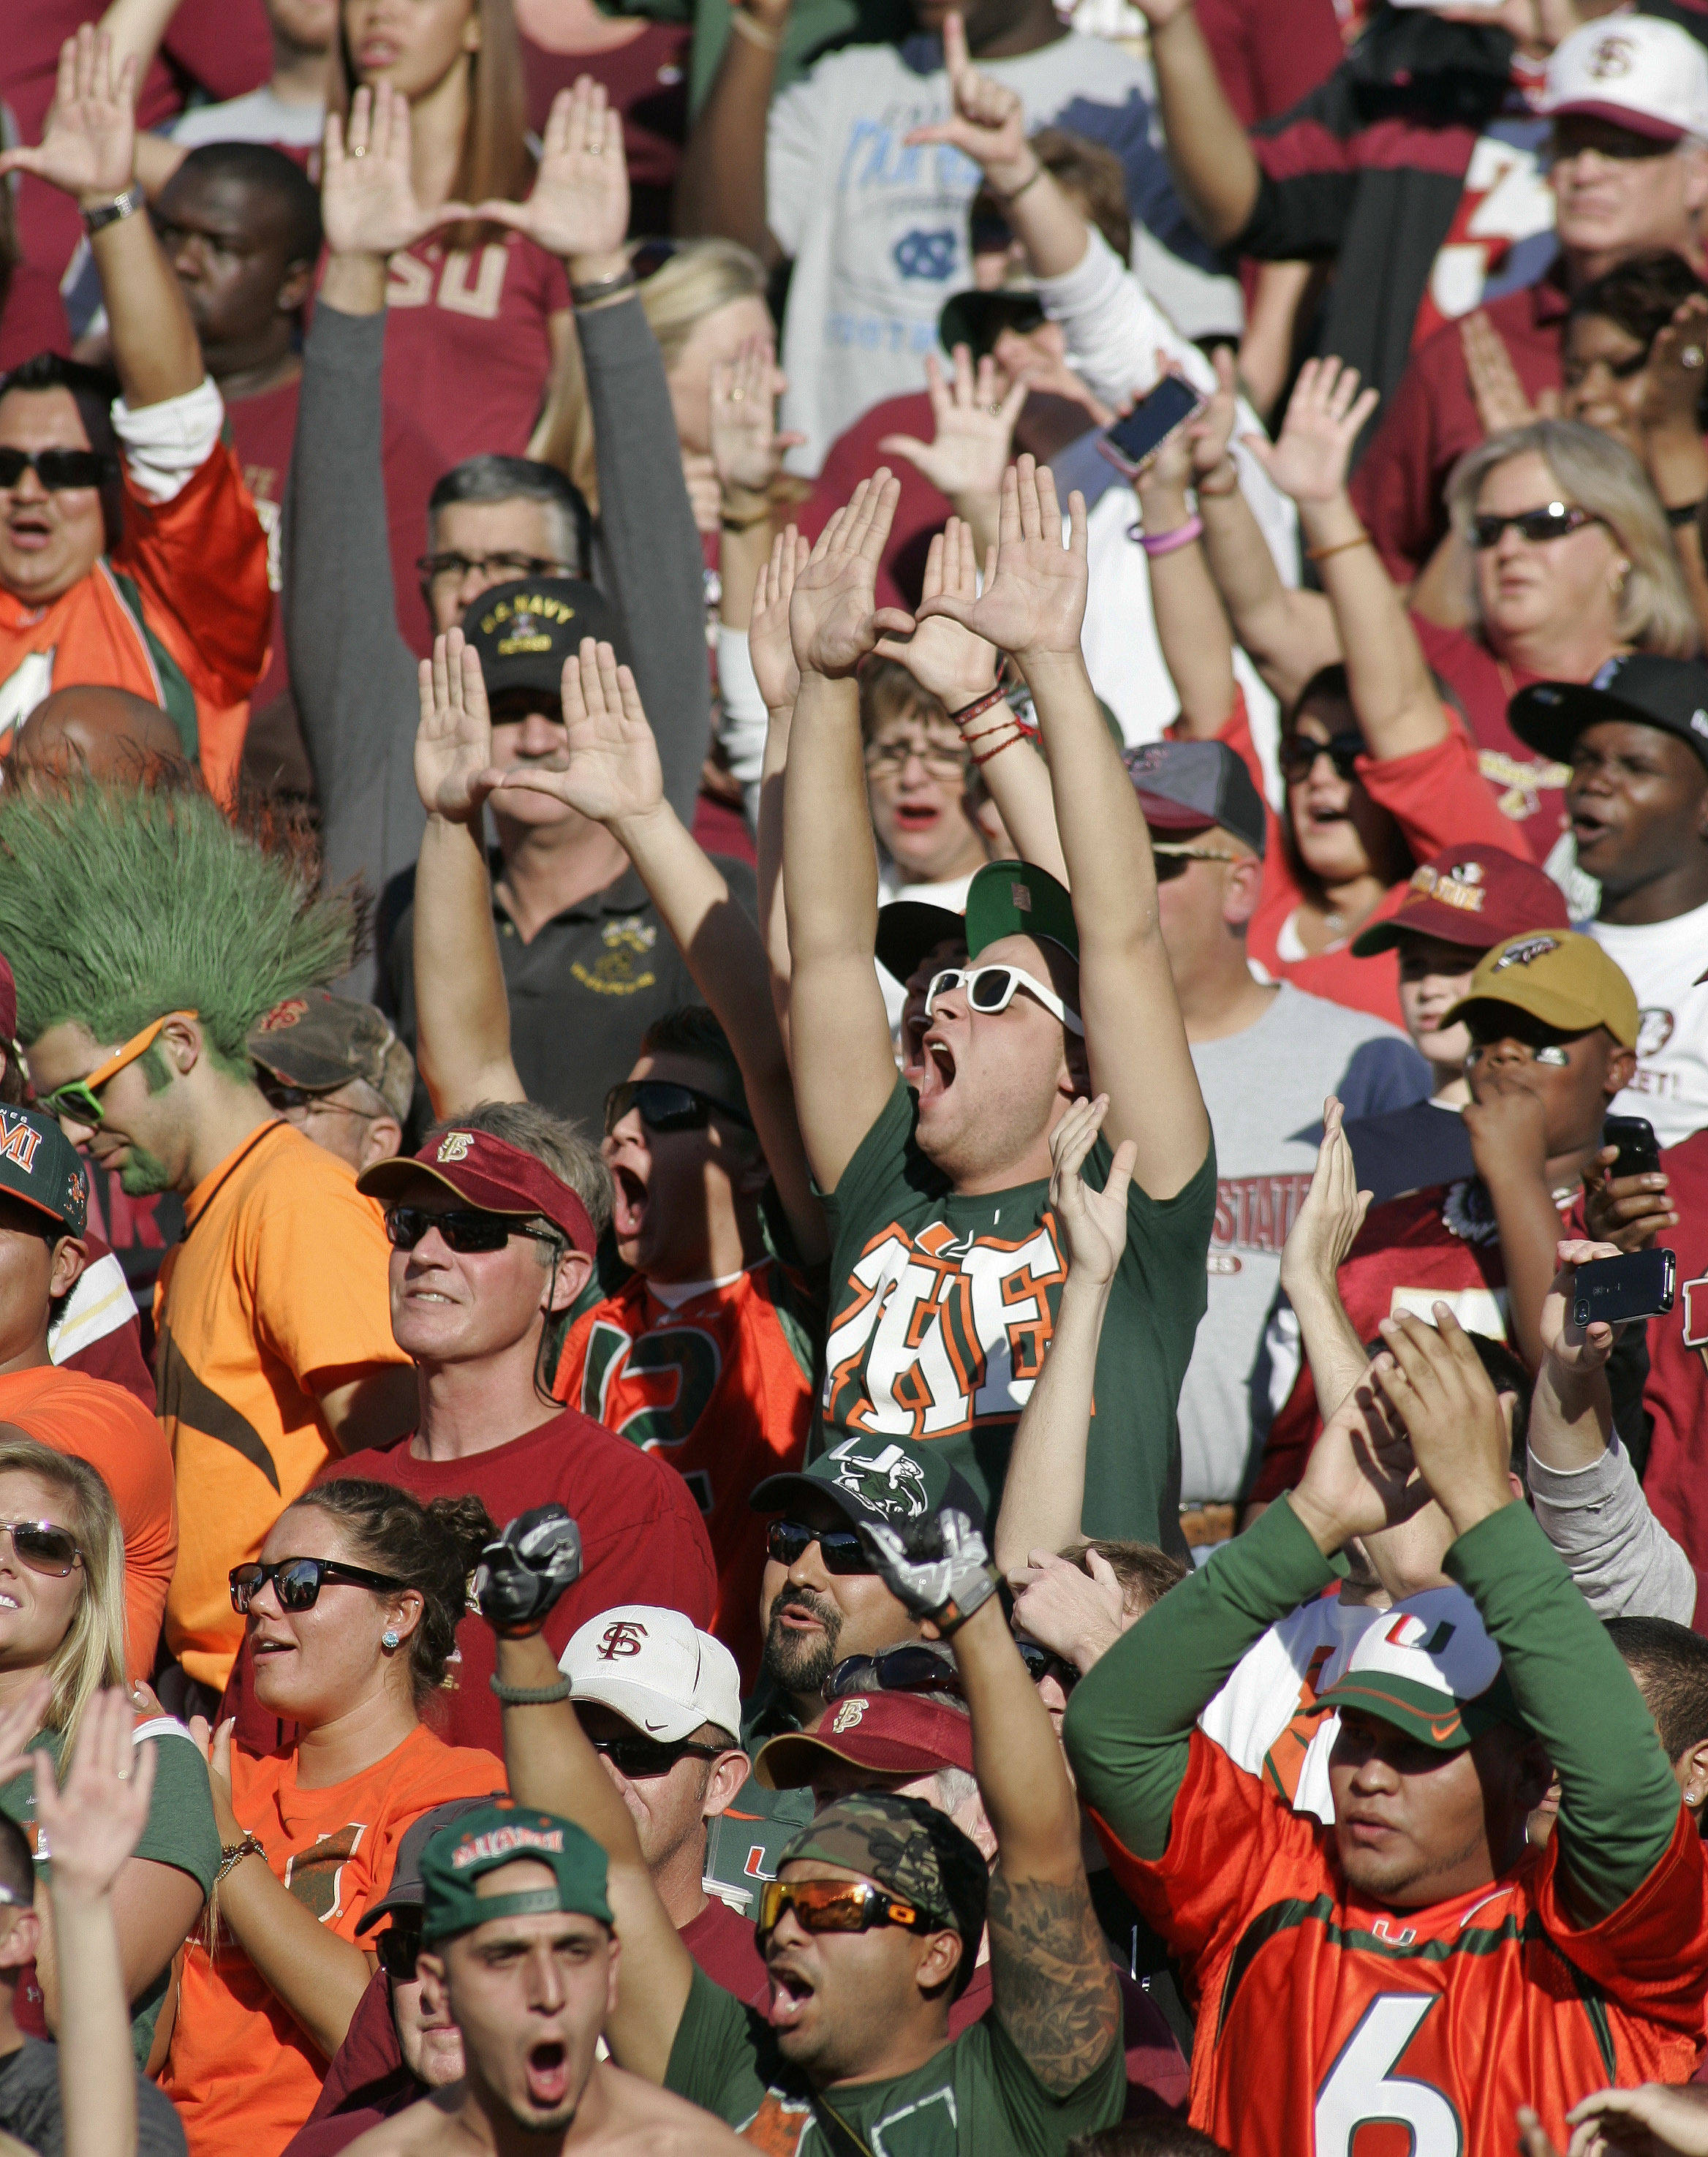 Miami fans cheer during the first quarter of an NCAA college football game against Florida State on Saturday, Nov. 12, 2011 in Tallahassee, Fla. (AP Photo/Phil Sears)